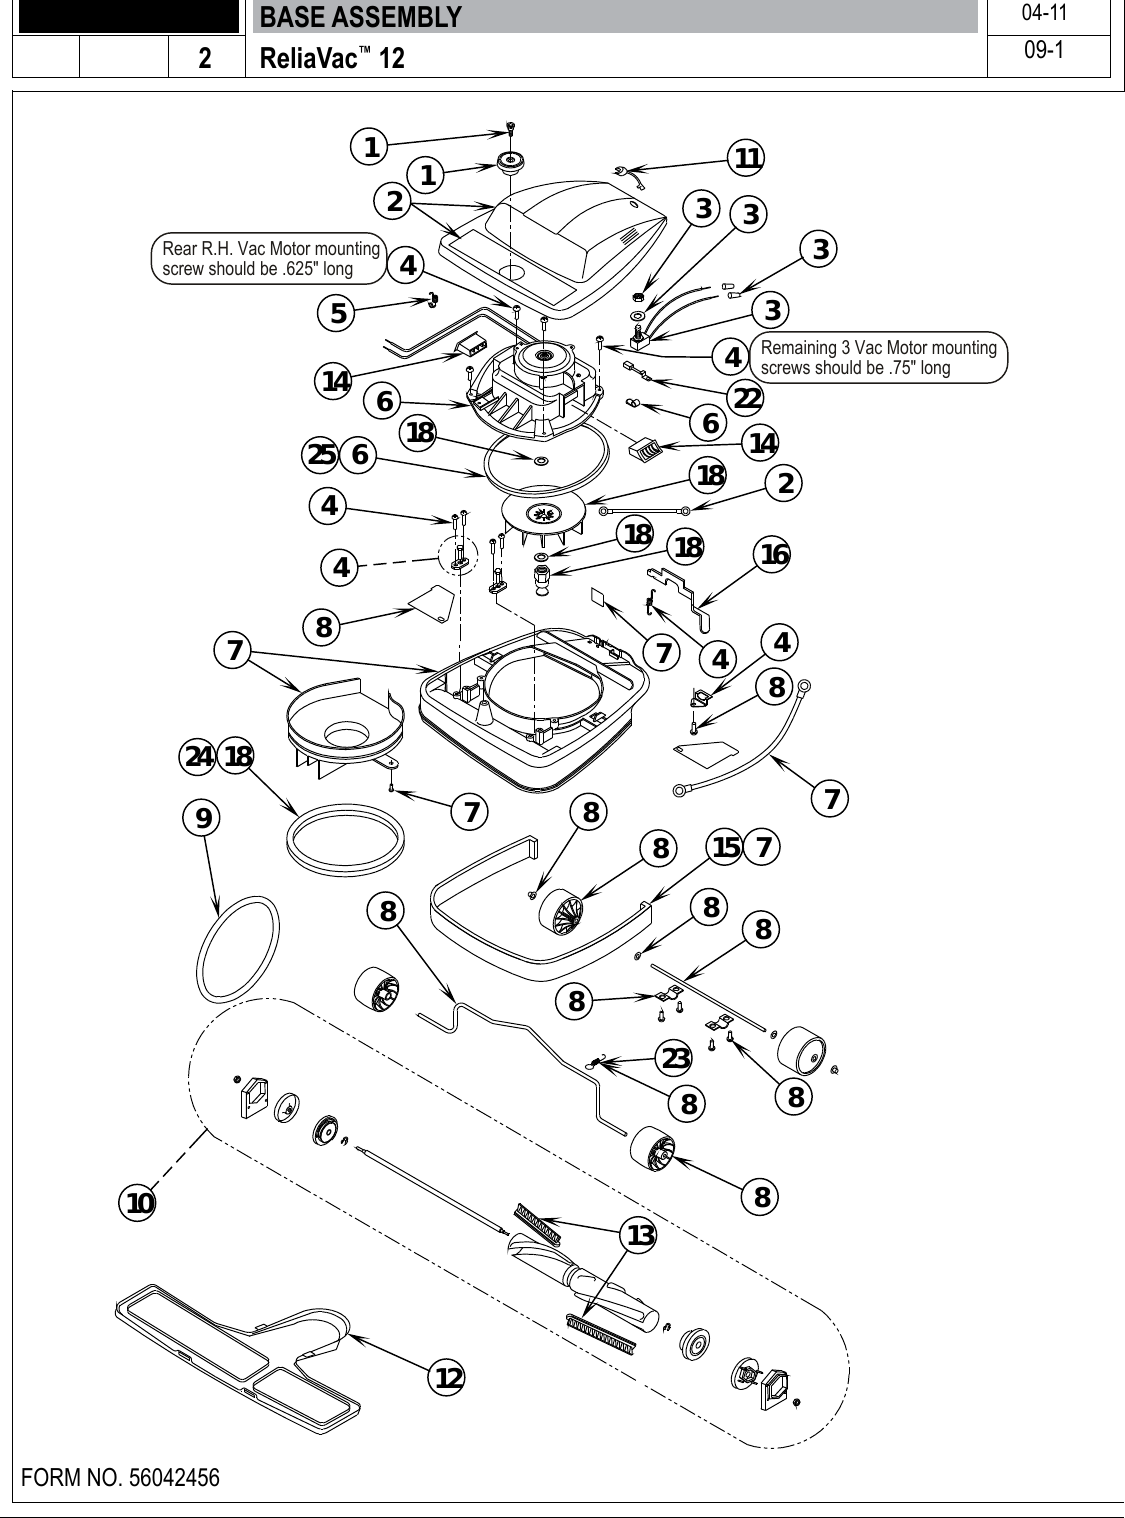 Dyson Vacuum Parts Diagram Dyson Vacuum Parts Diagram